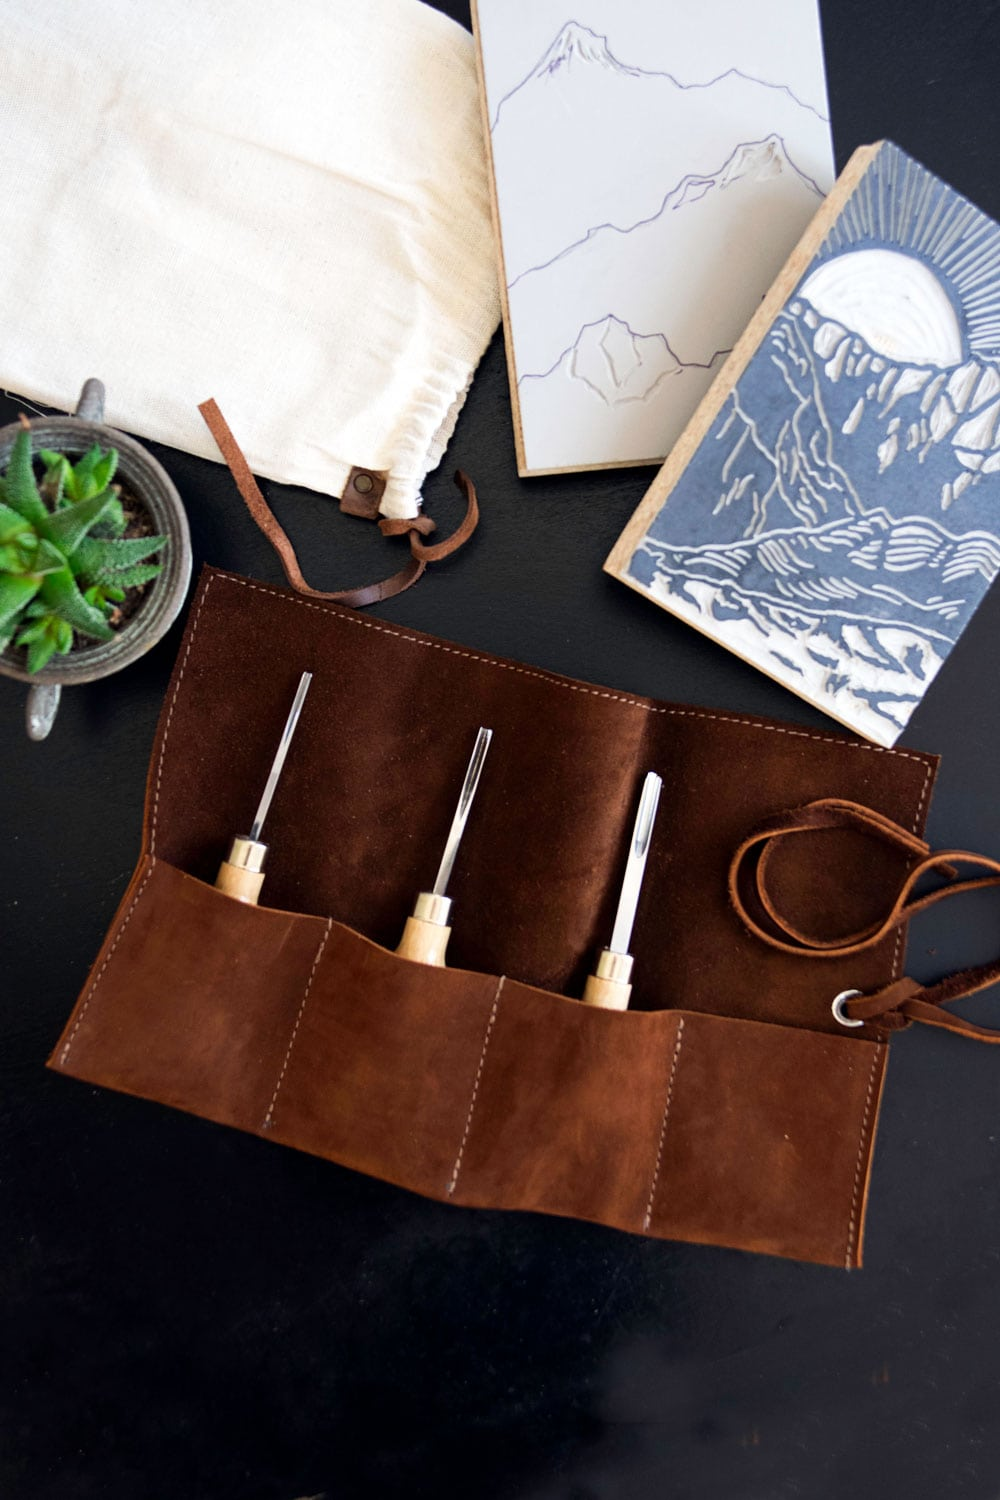 The Printmaker's Carving Kit | Aftyn Shah